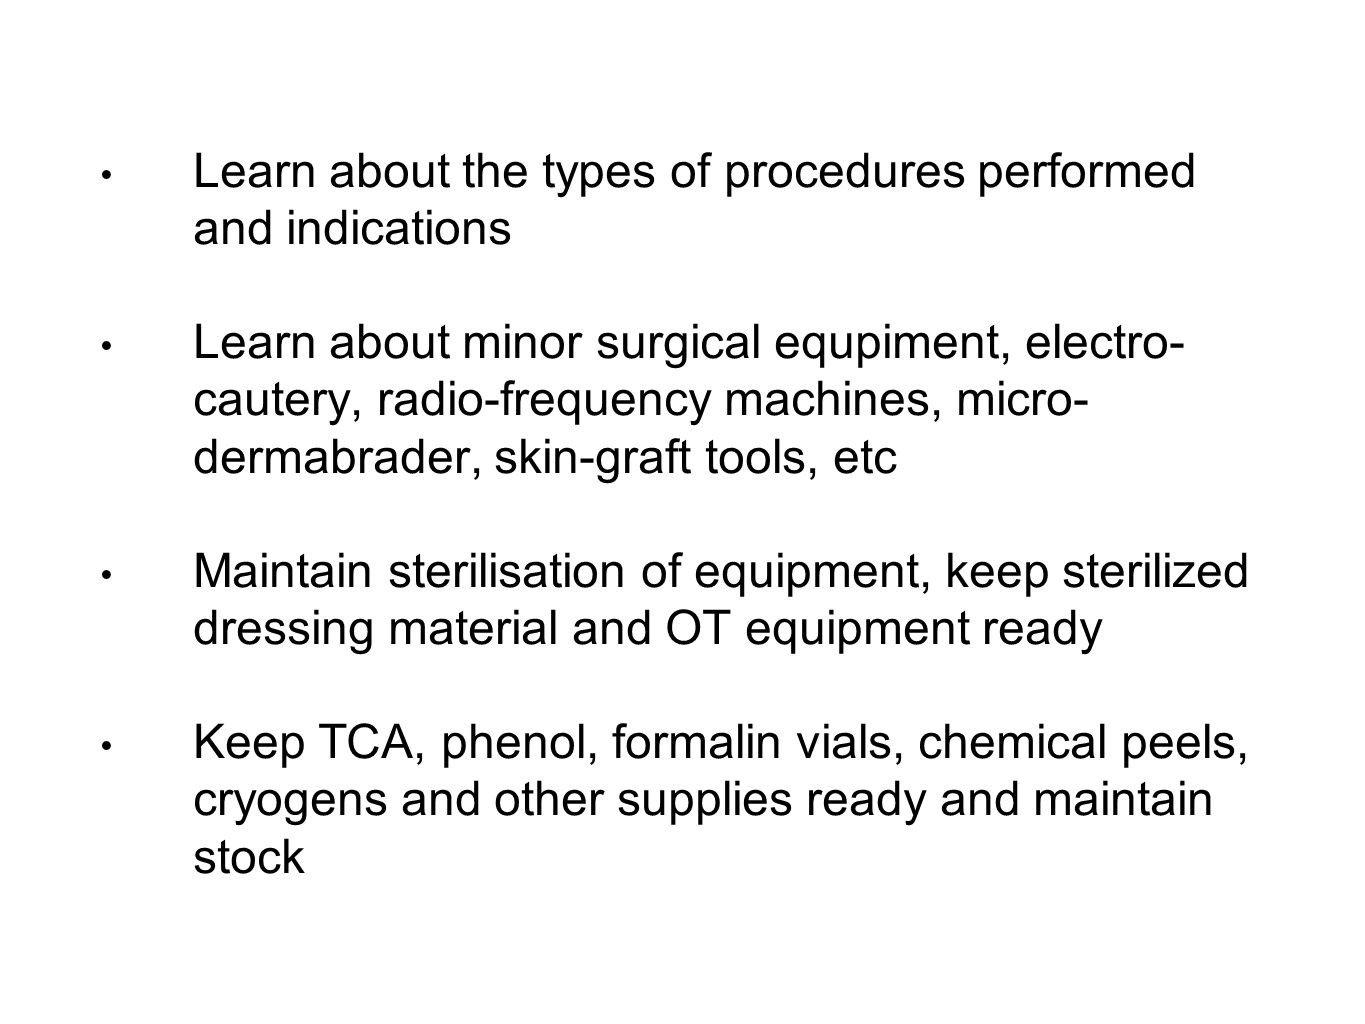 Learn about the types of procedures performed and indications